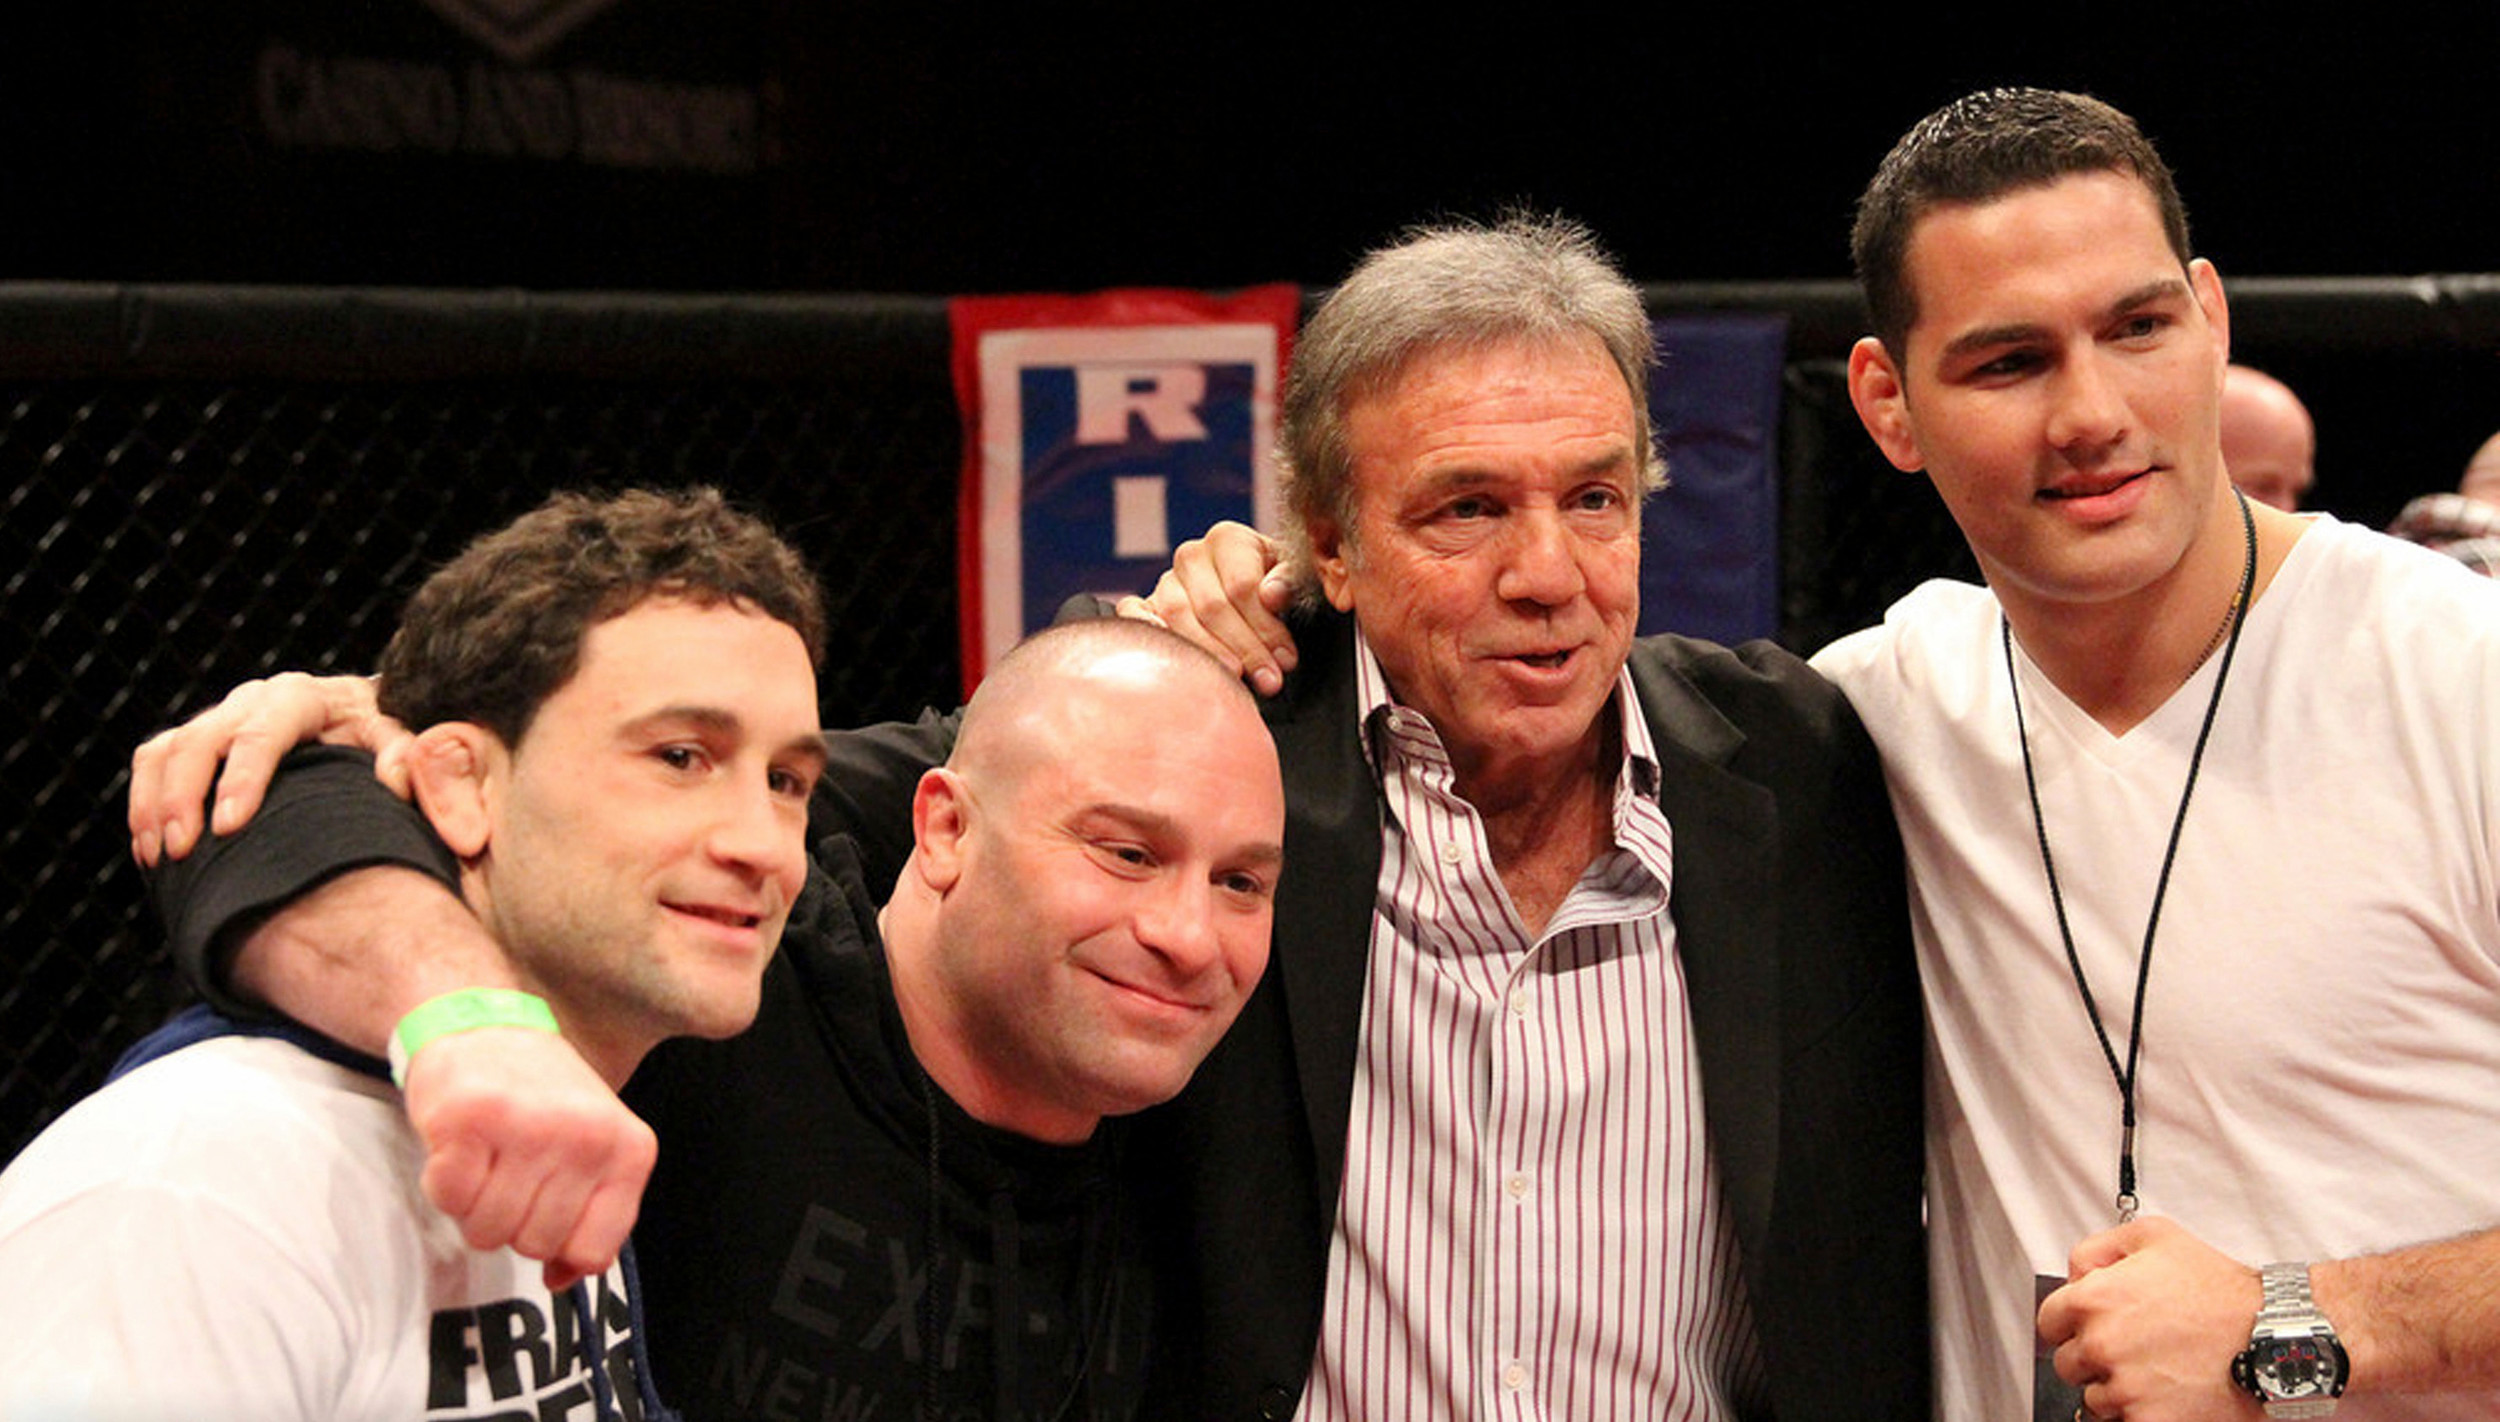 MMA promoter, Lou Negila, third from left, with former UFC champions Frankie Edgar, far left, Matt Serra, and Chris Weidman.